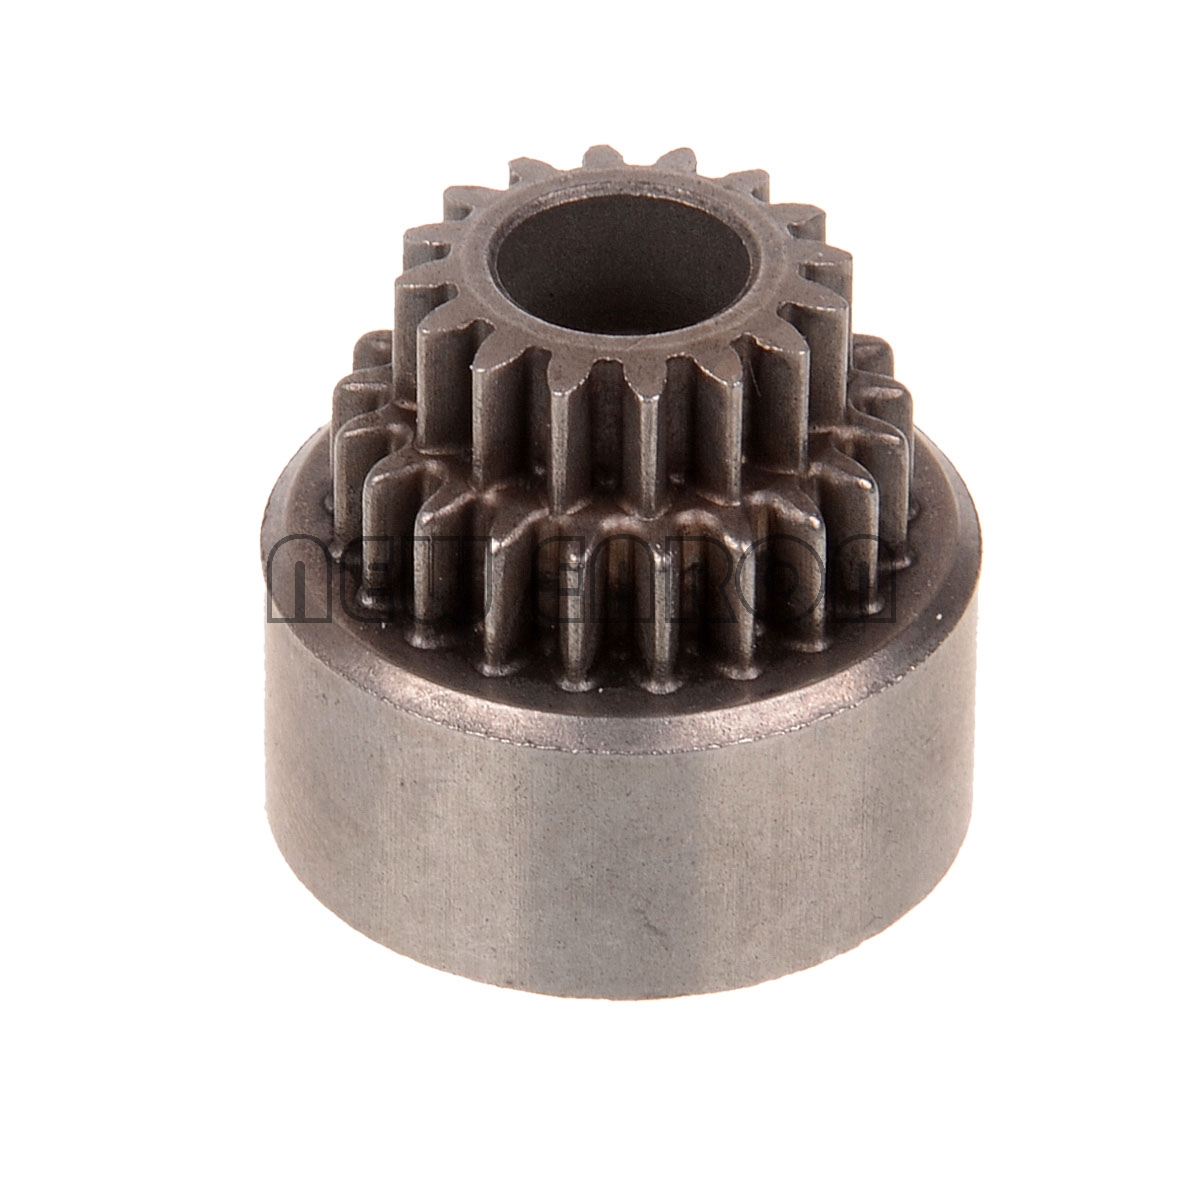 NEW ENRON HSP Clutch Bell(Double Gears) 02023 HSP Racing RedCat Parts For 1/10 RC Model Car